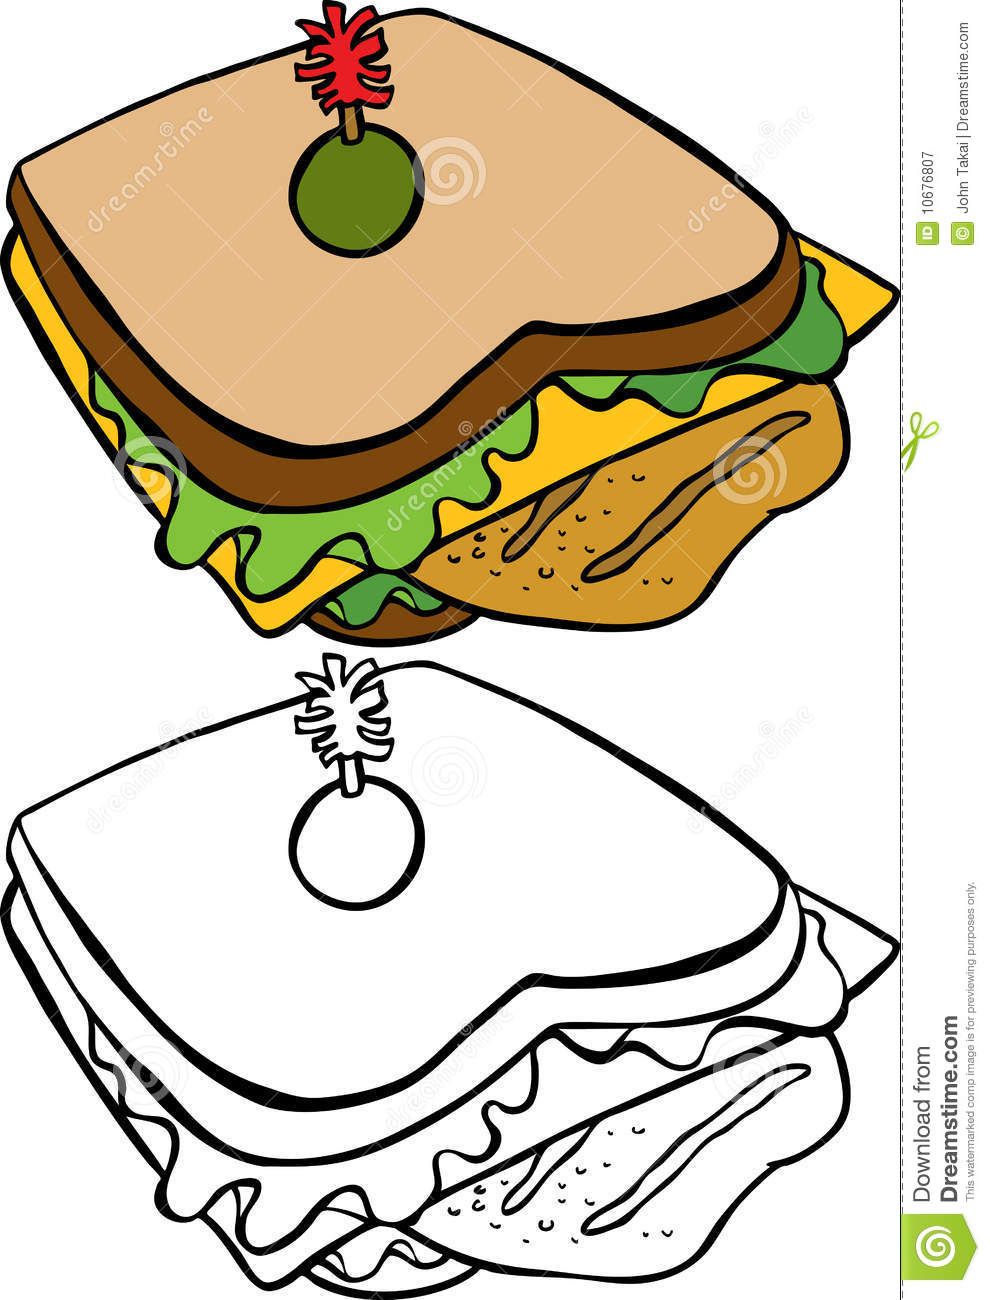 Sandwich Wrap Drawing   Clipart Panda   Free Clipart Images